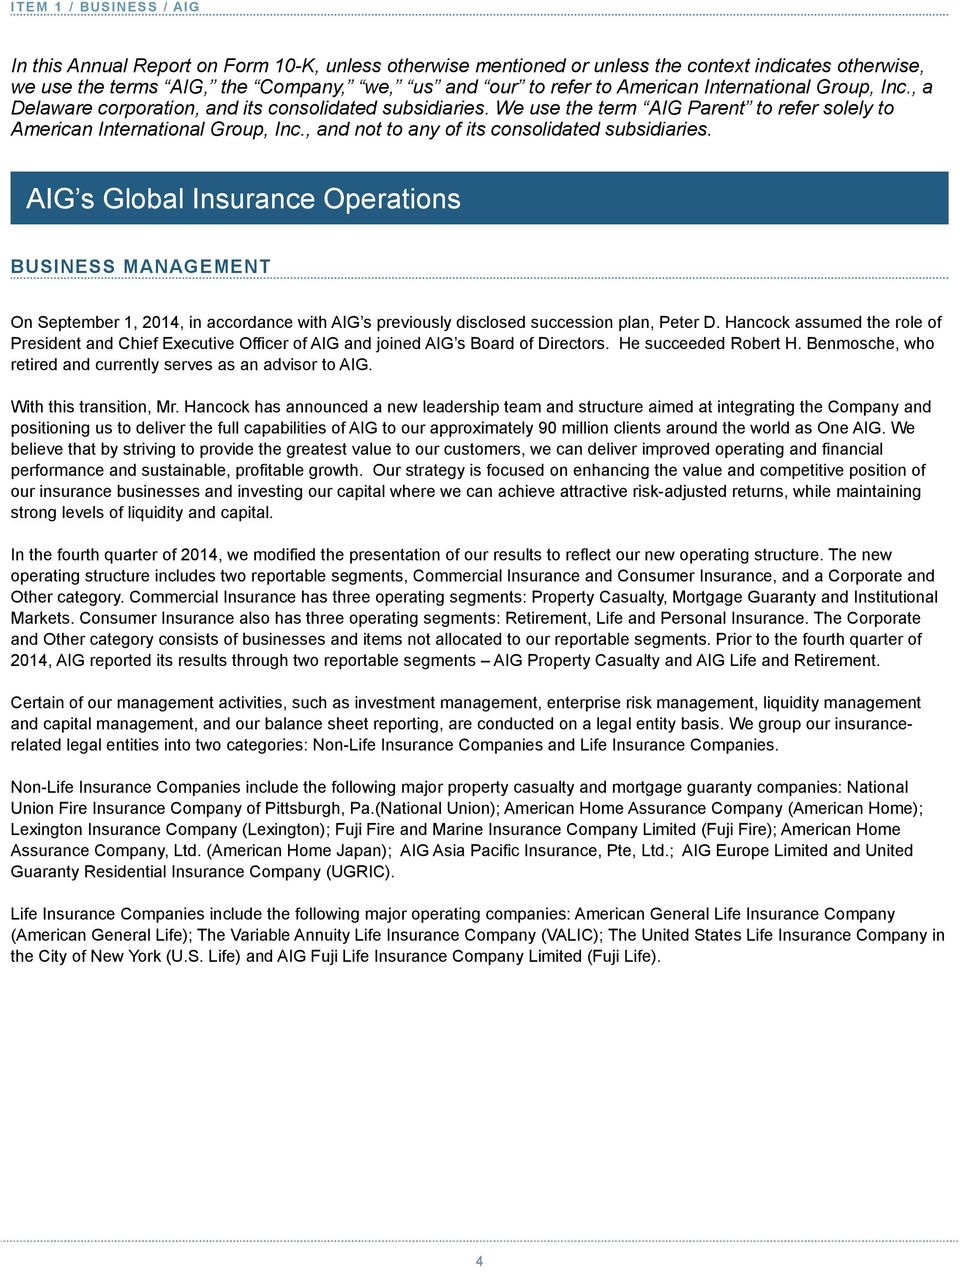 , and not to any of its consolidated subsidiaries. AIG s Global Insurance Operations BUSINESS MANAGEMENT On September 1, 2014, in accordance with AIG s previously disclosed succession plan, Peter D.